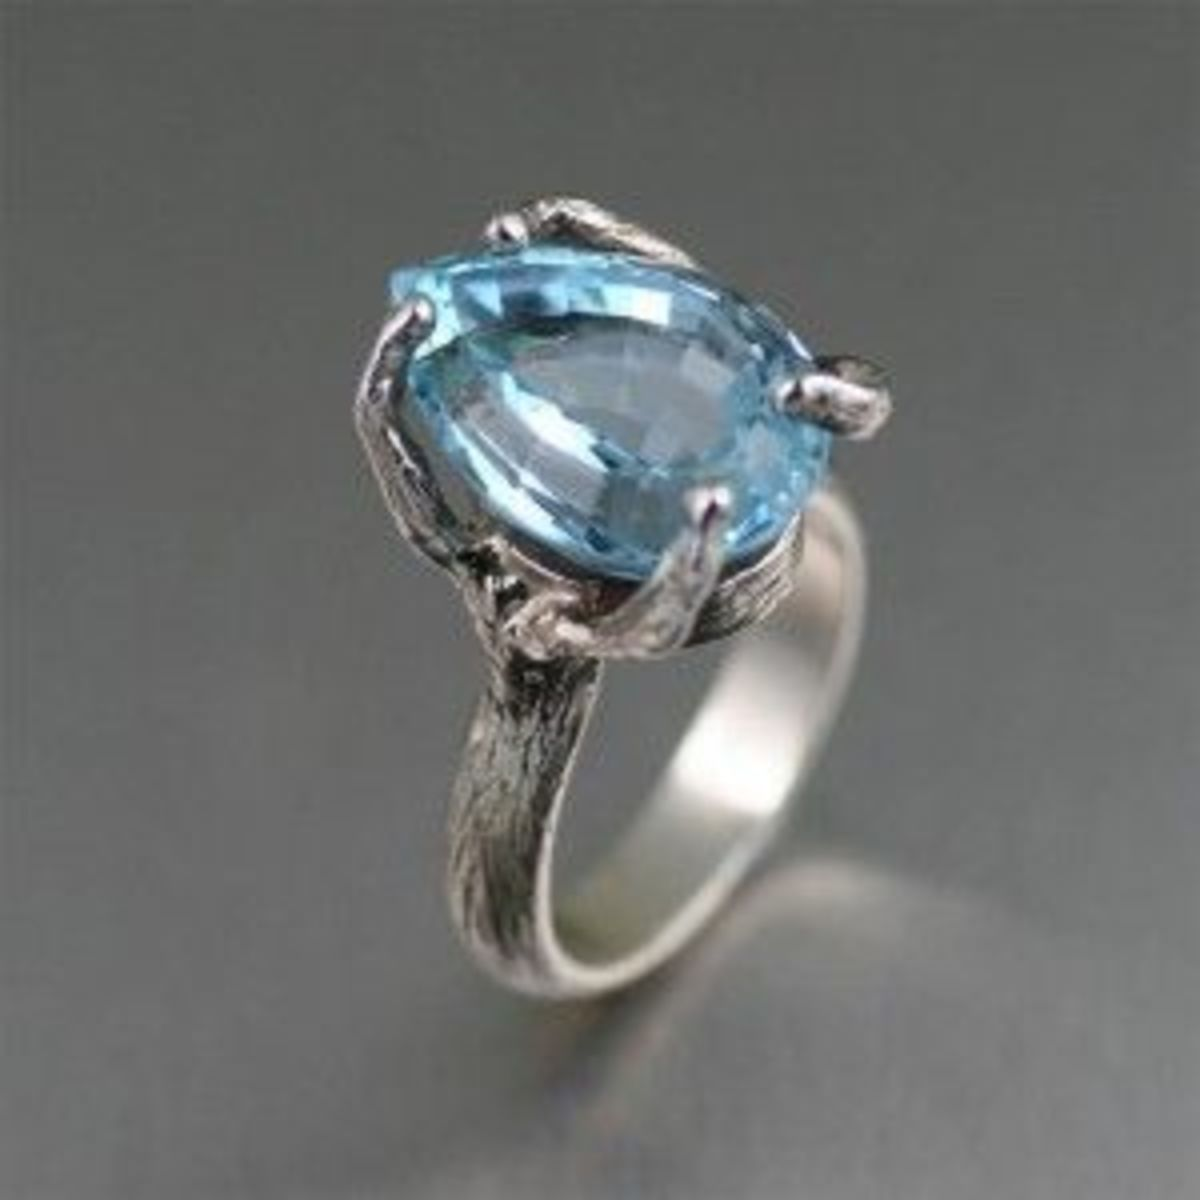 13 ct Pear Cut Blue Topaz Sterling Silver Cocktail Ring